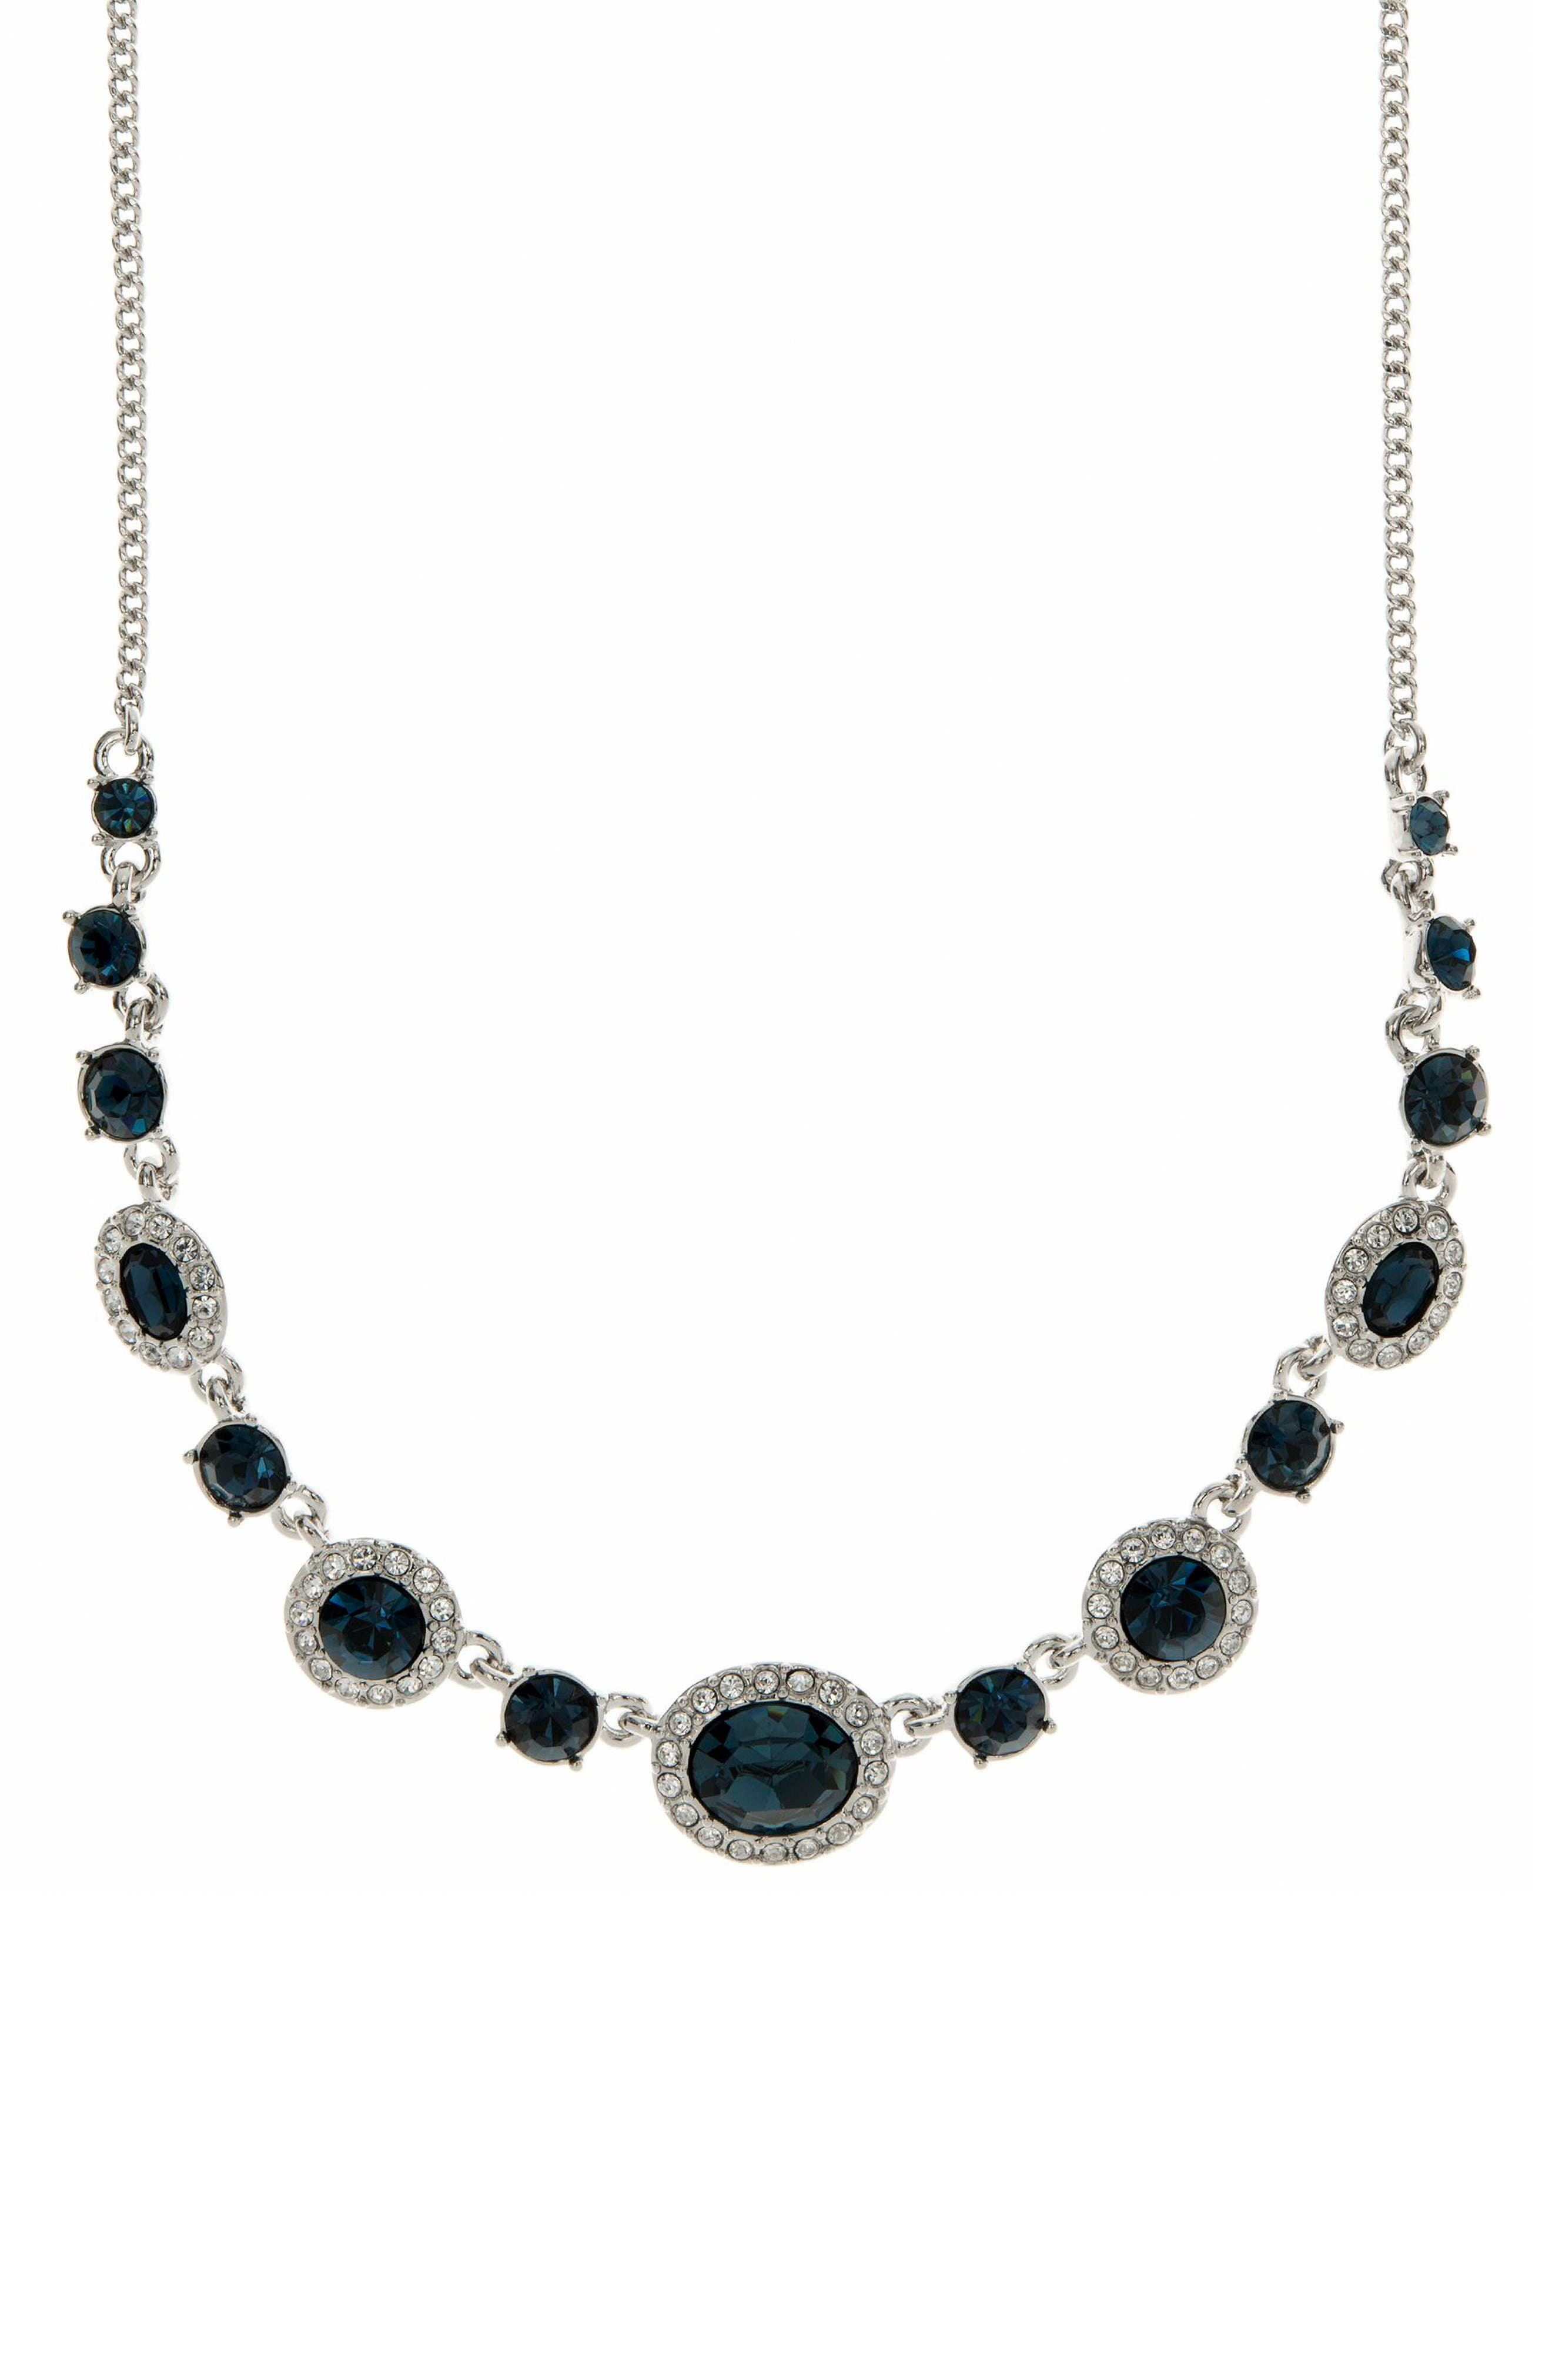 Crsytal Frontal Necklace,                             Main thumbnail 1, color,                             Blue / Silver